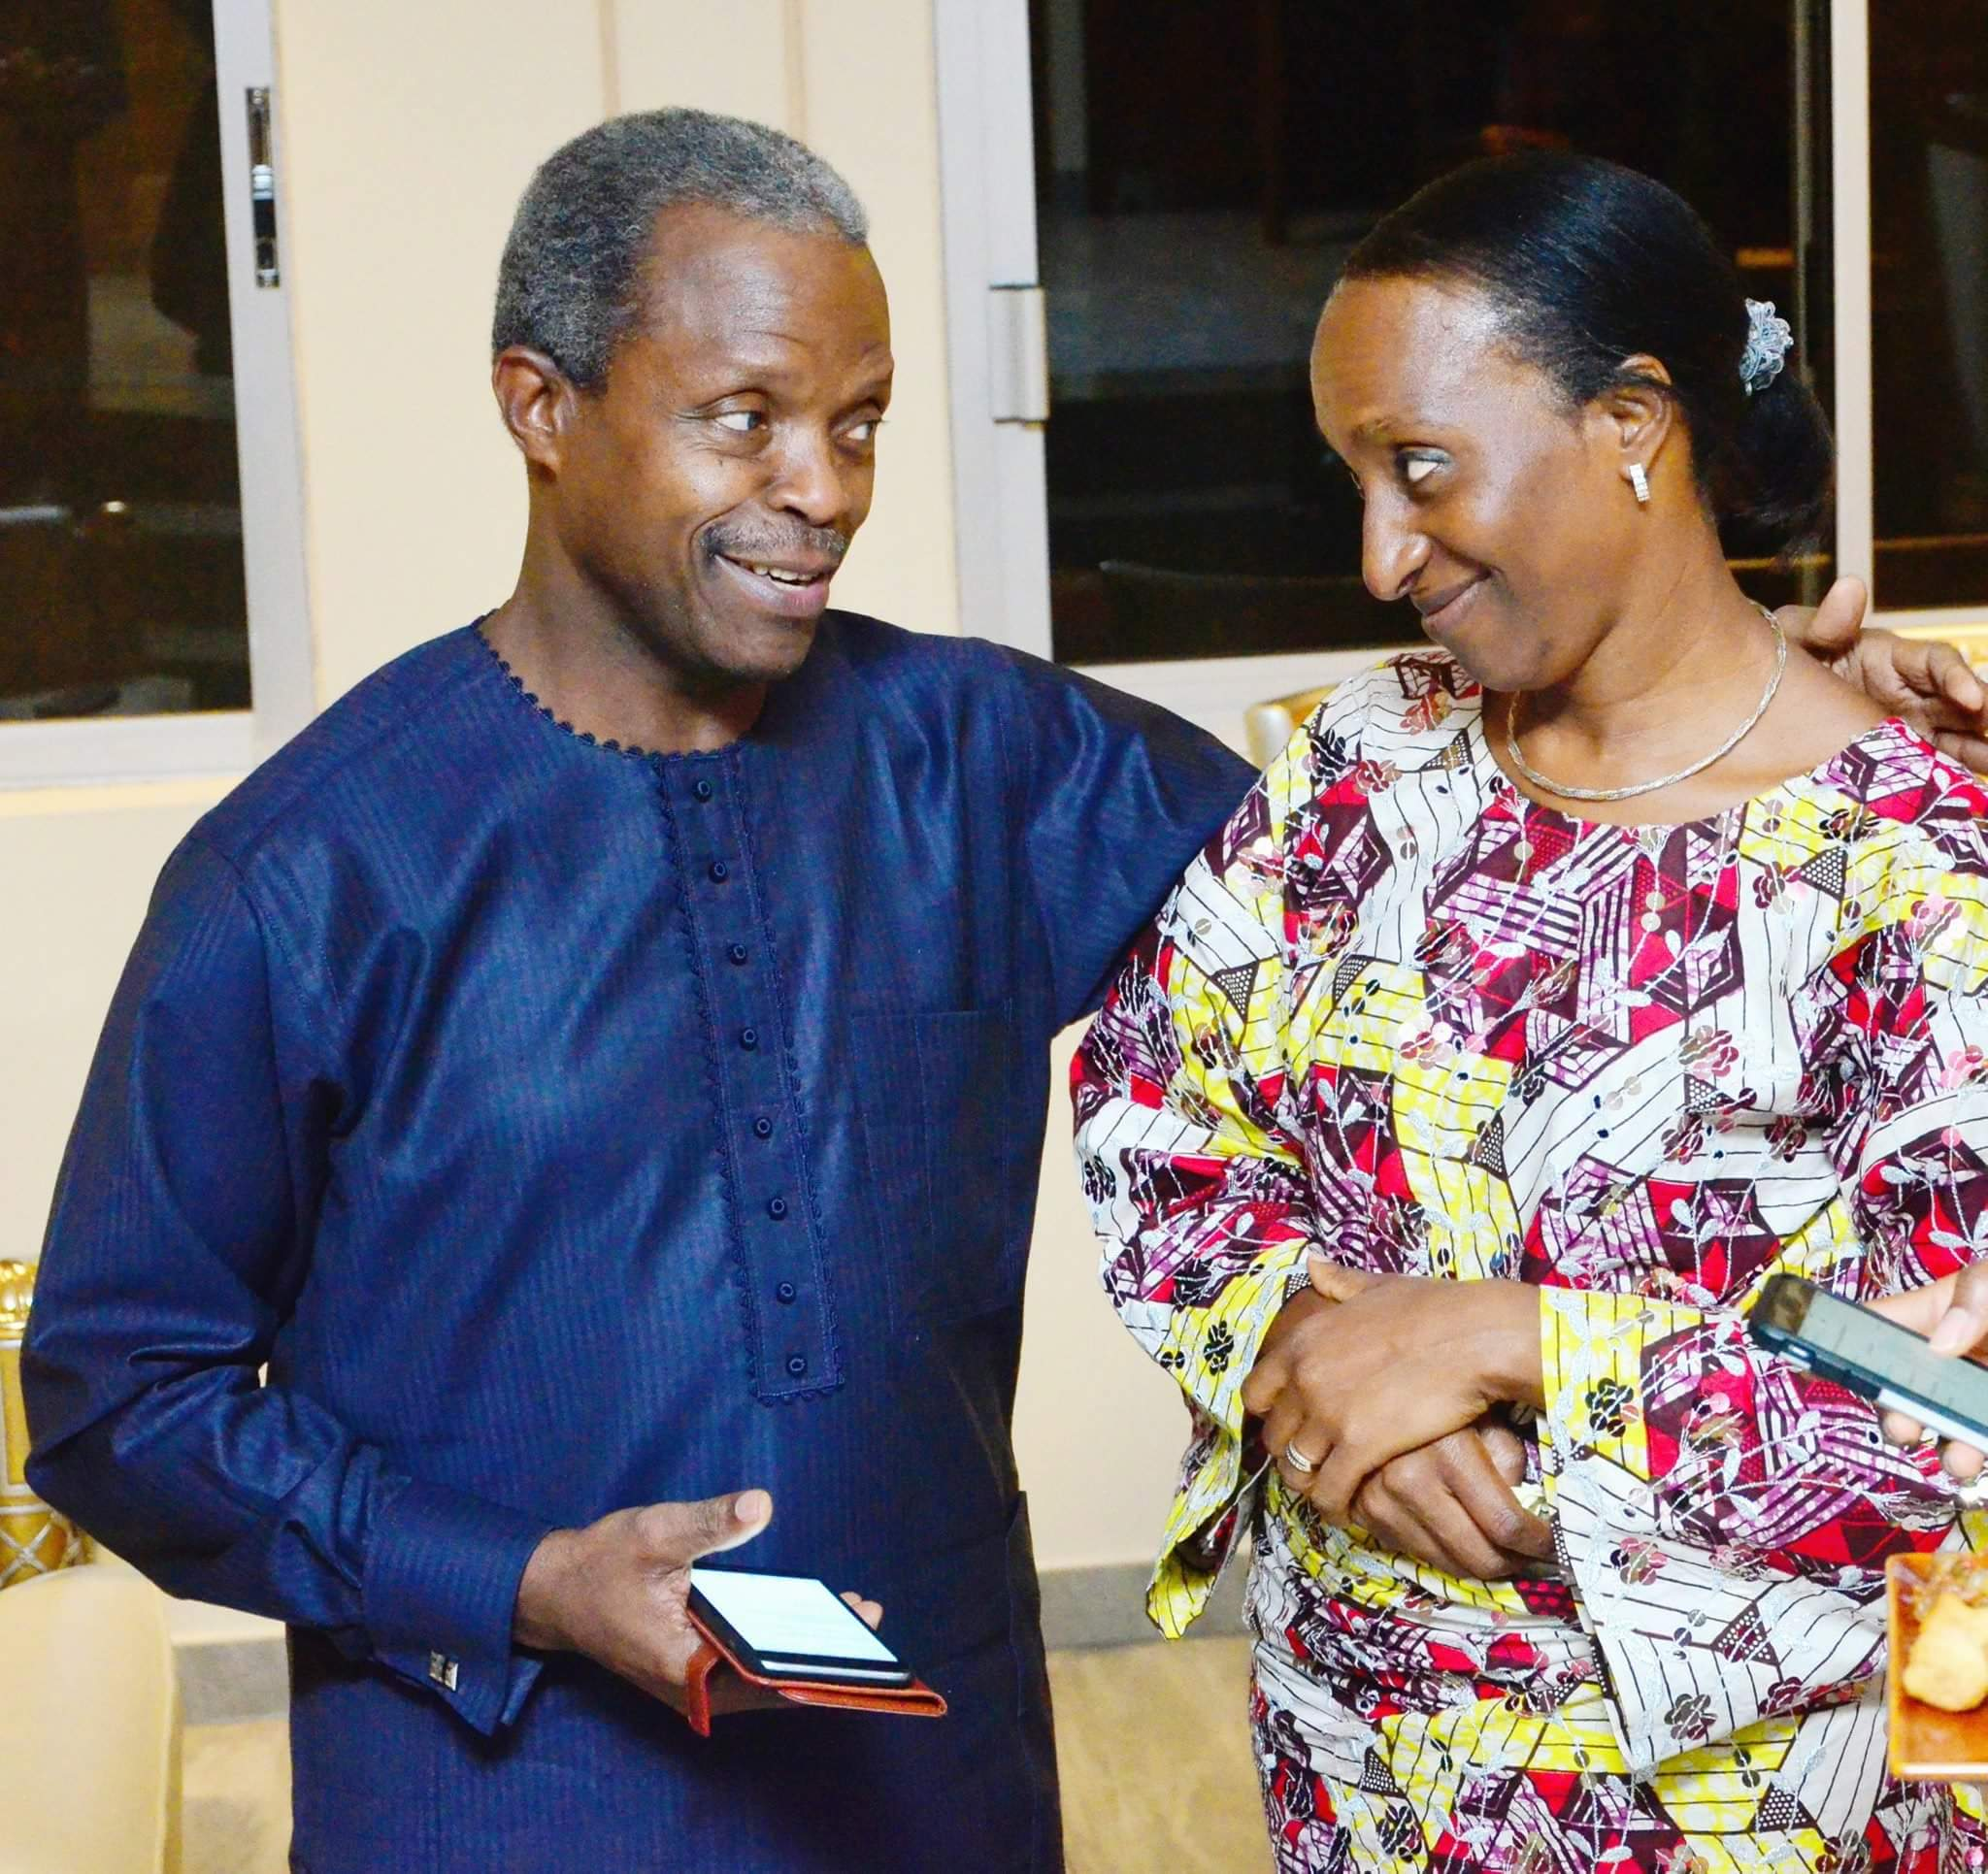 """My treasure, your heart is my home"" VP Yemi Osinbajo tells his wife, Dolapo, as they celebrcelebrate their 28th wedding anniversary"